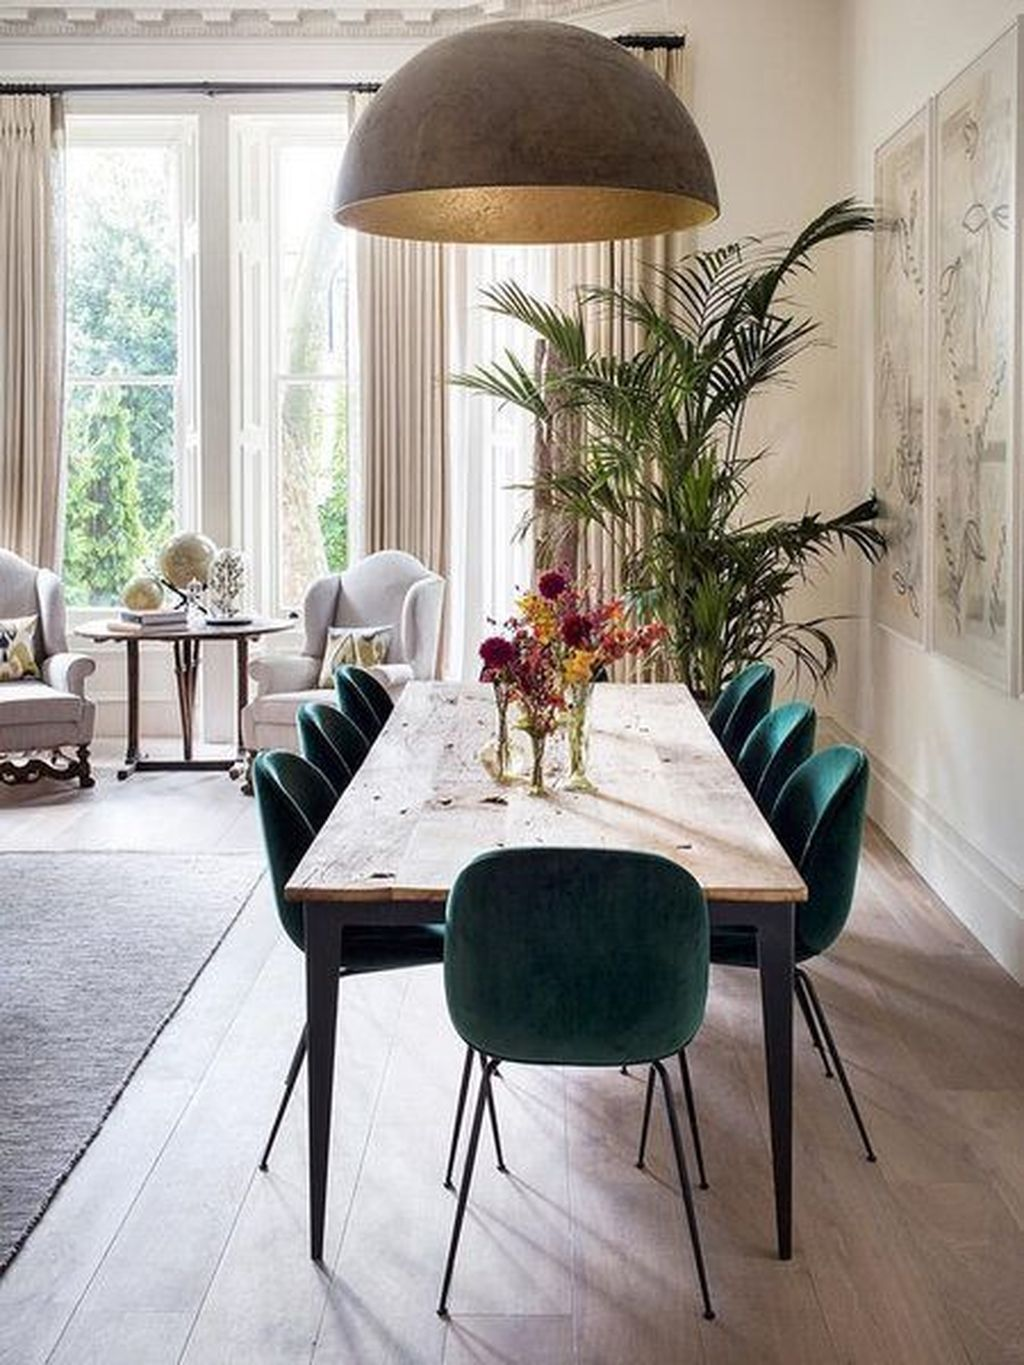 46 Awesome Scandinavian Dining Room Design Ideas With Swedish